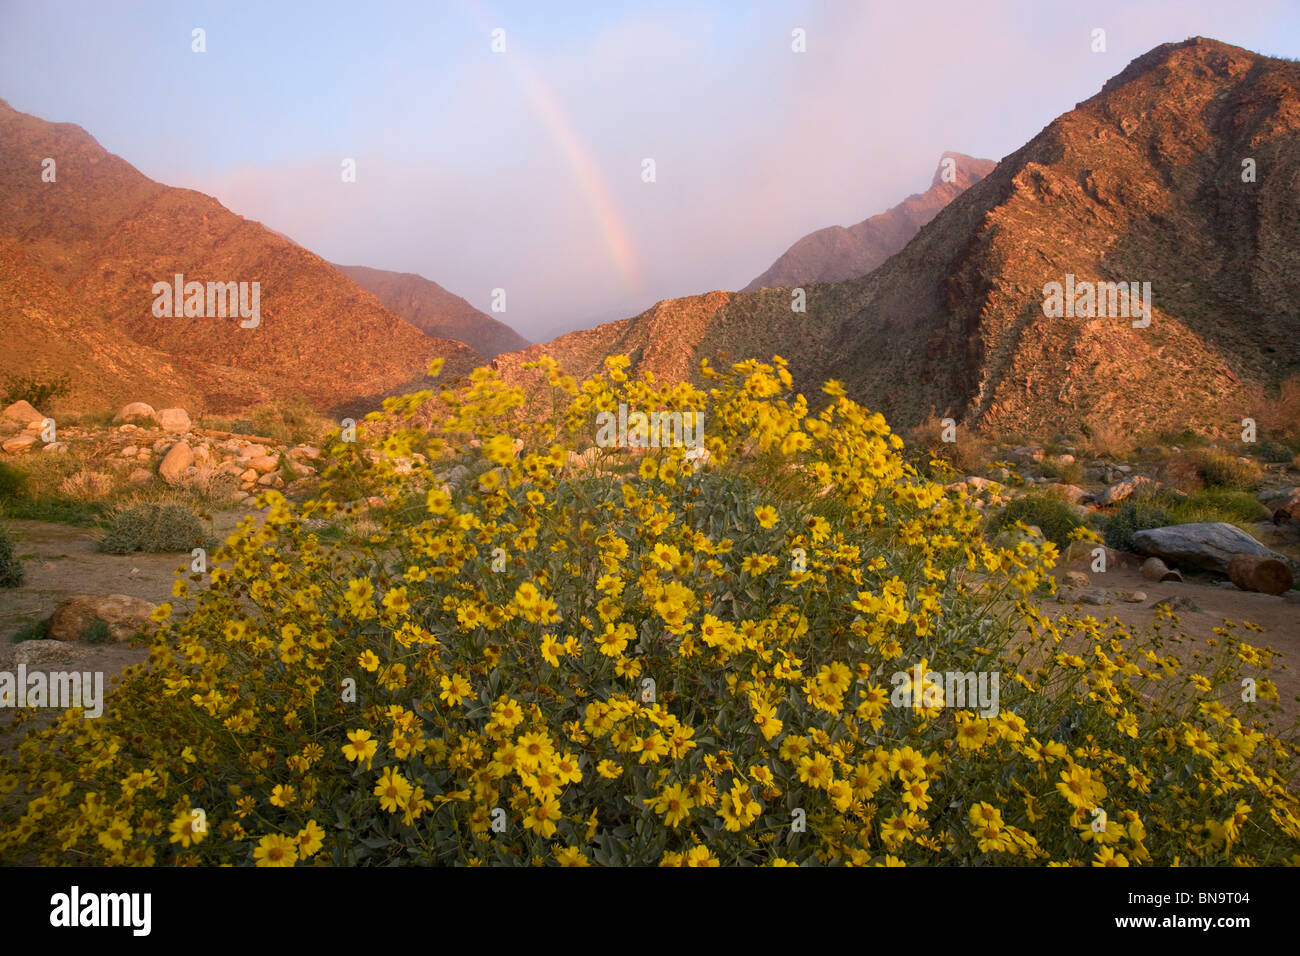 Fleurs sauvages dans Borrego Palm Canyon, Anza-Borrego Desert State Park, Californie. Photo Stock